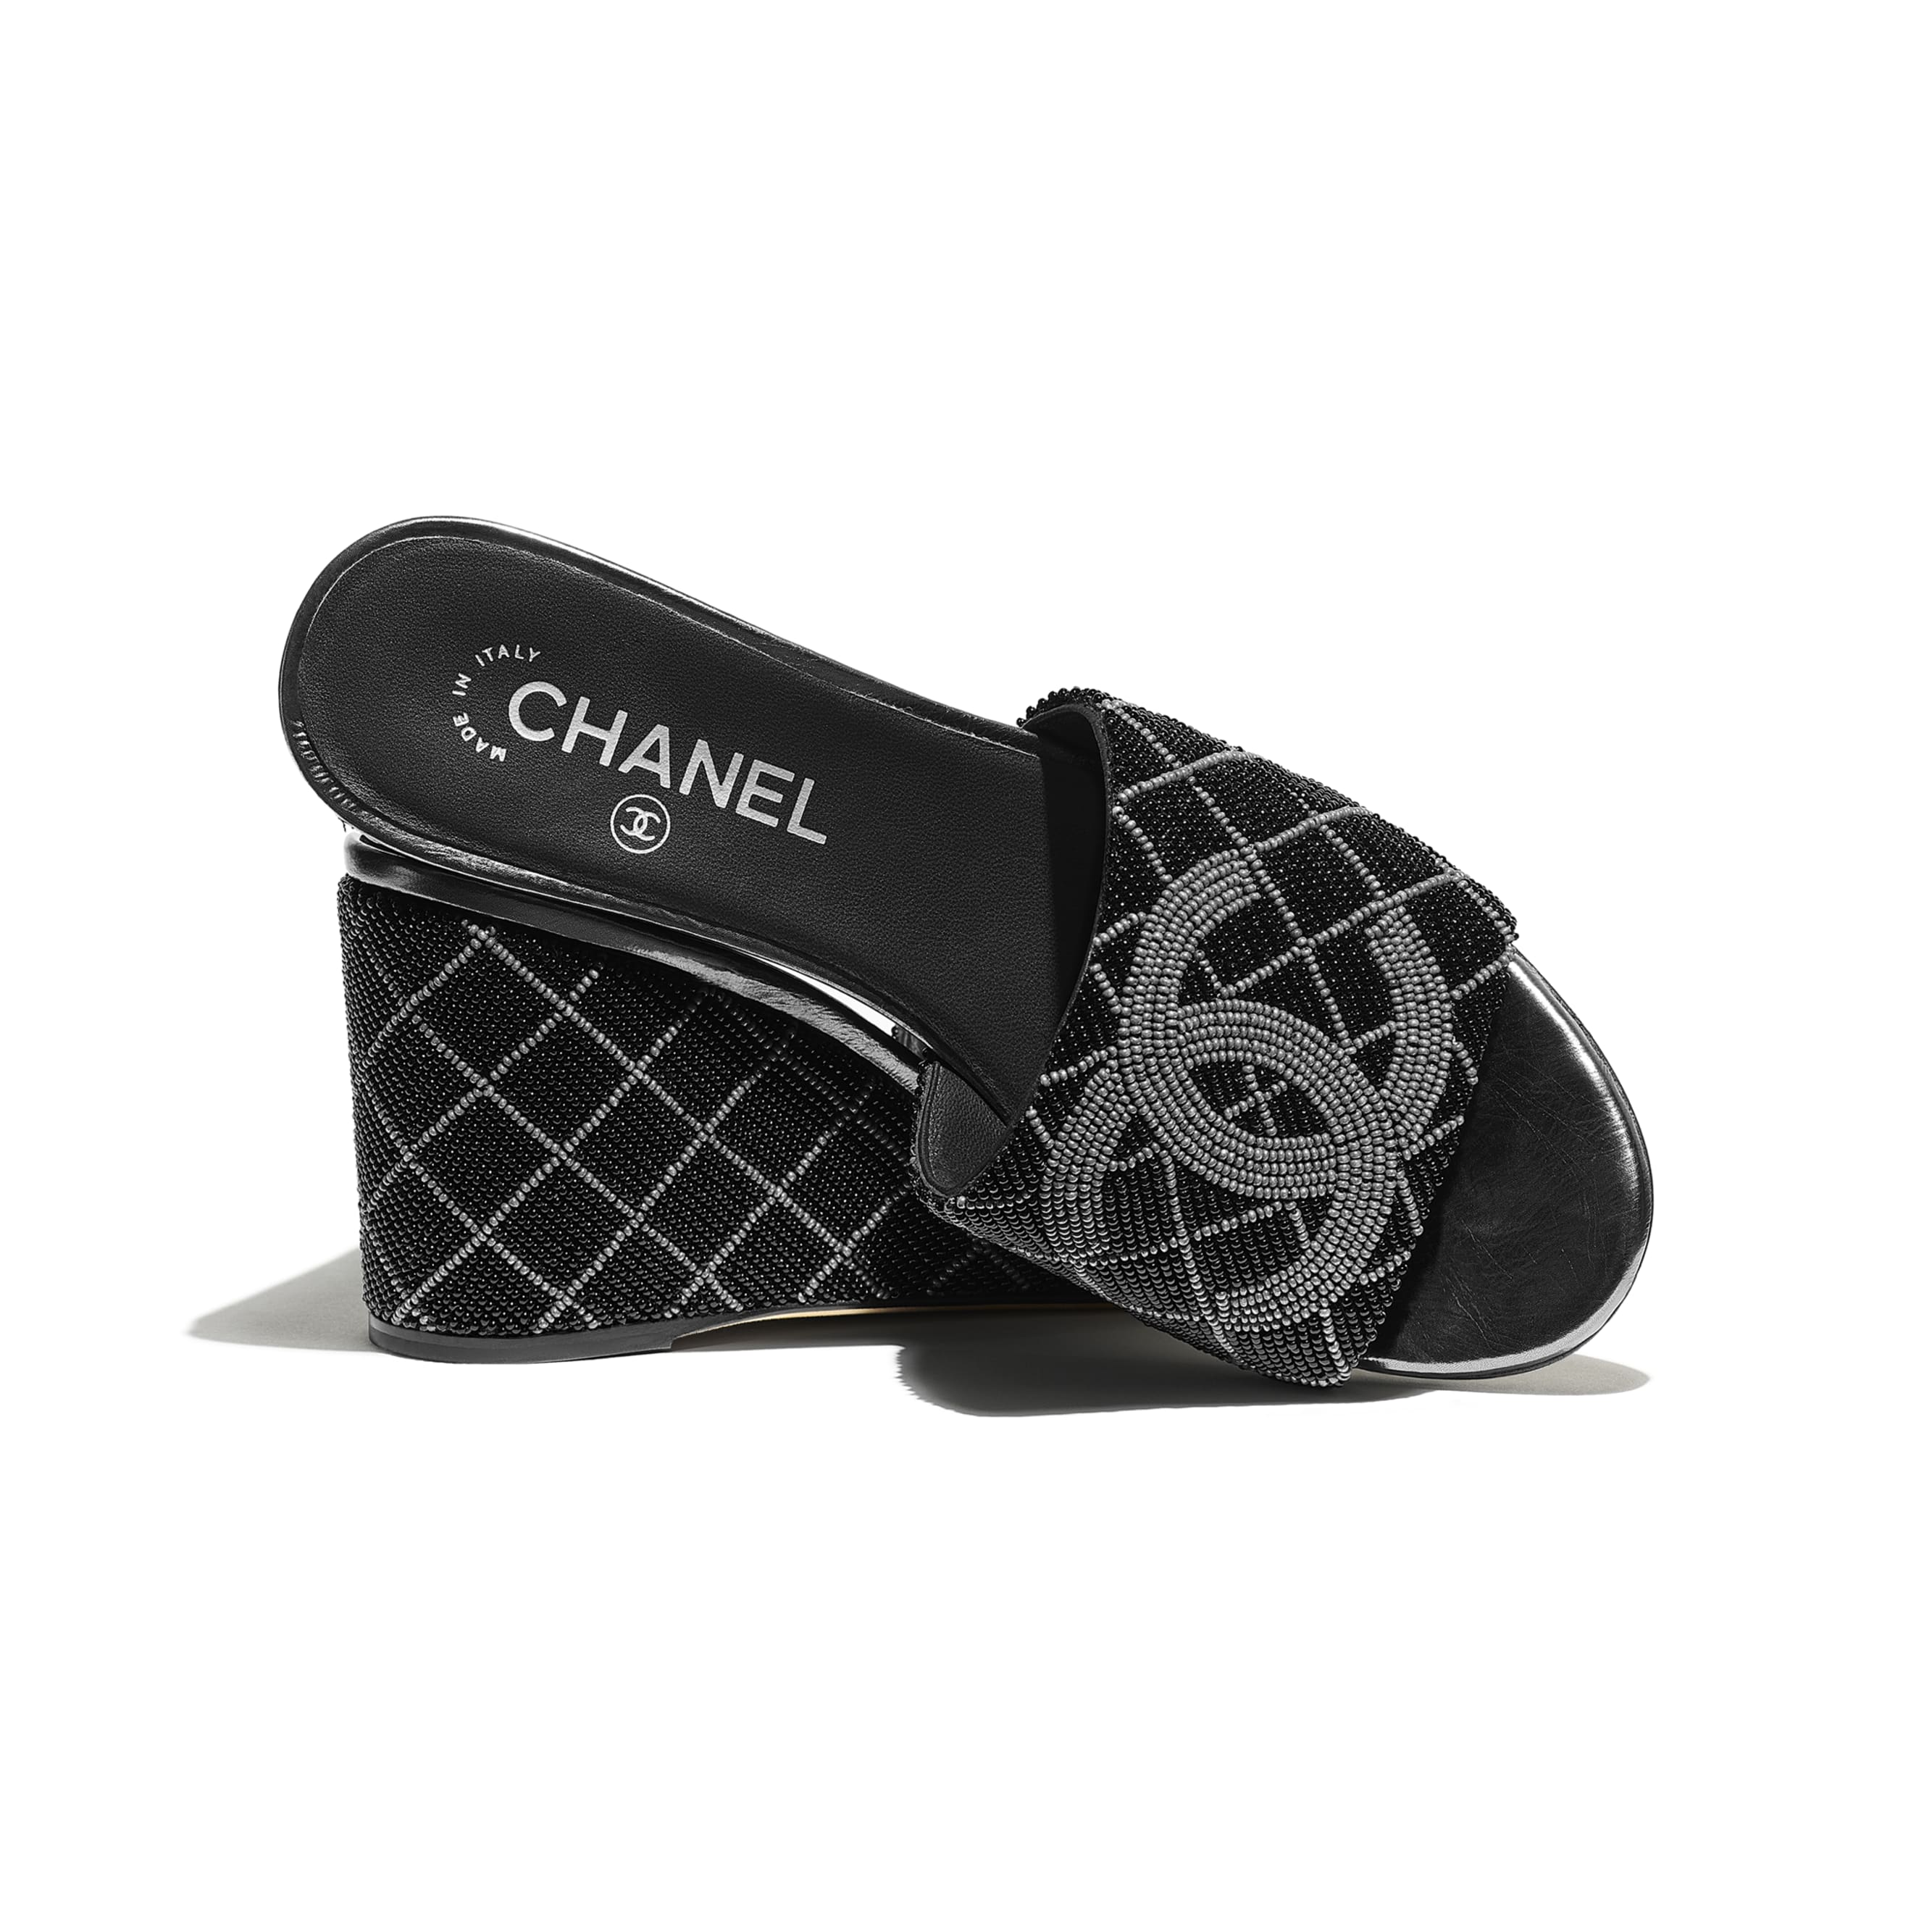 Mules - Black & Gray - Pearl Embroidery - CHANEL - Extra view - see standard sized version